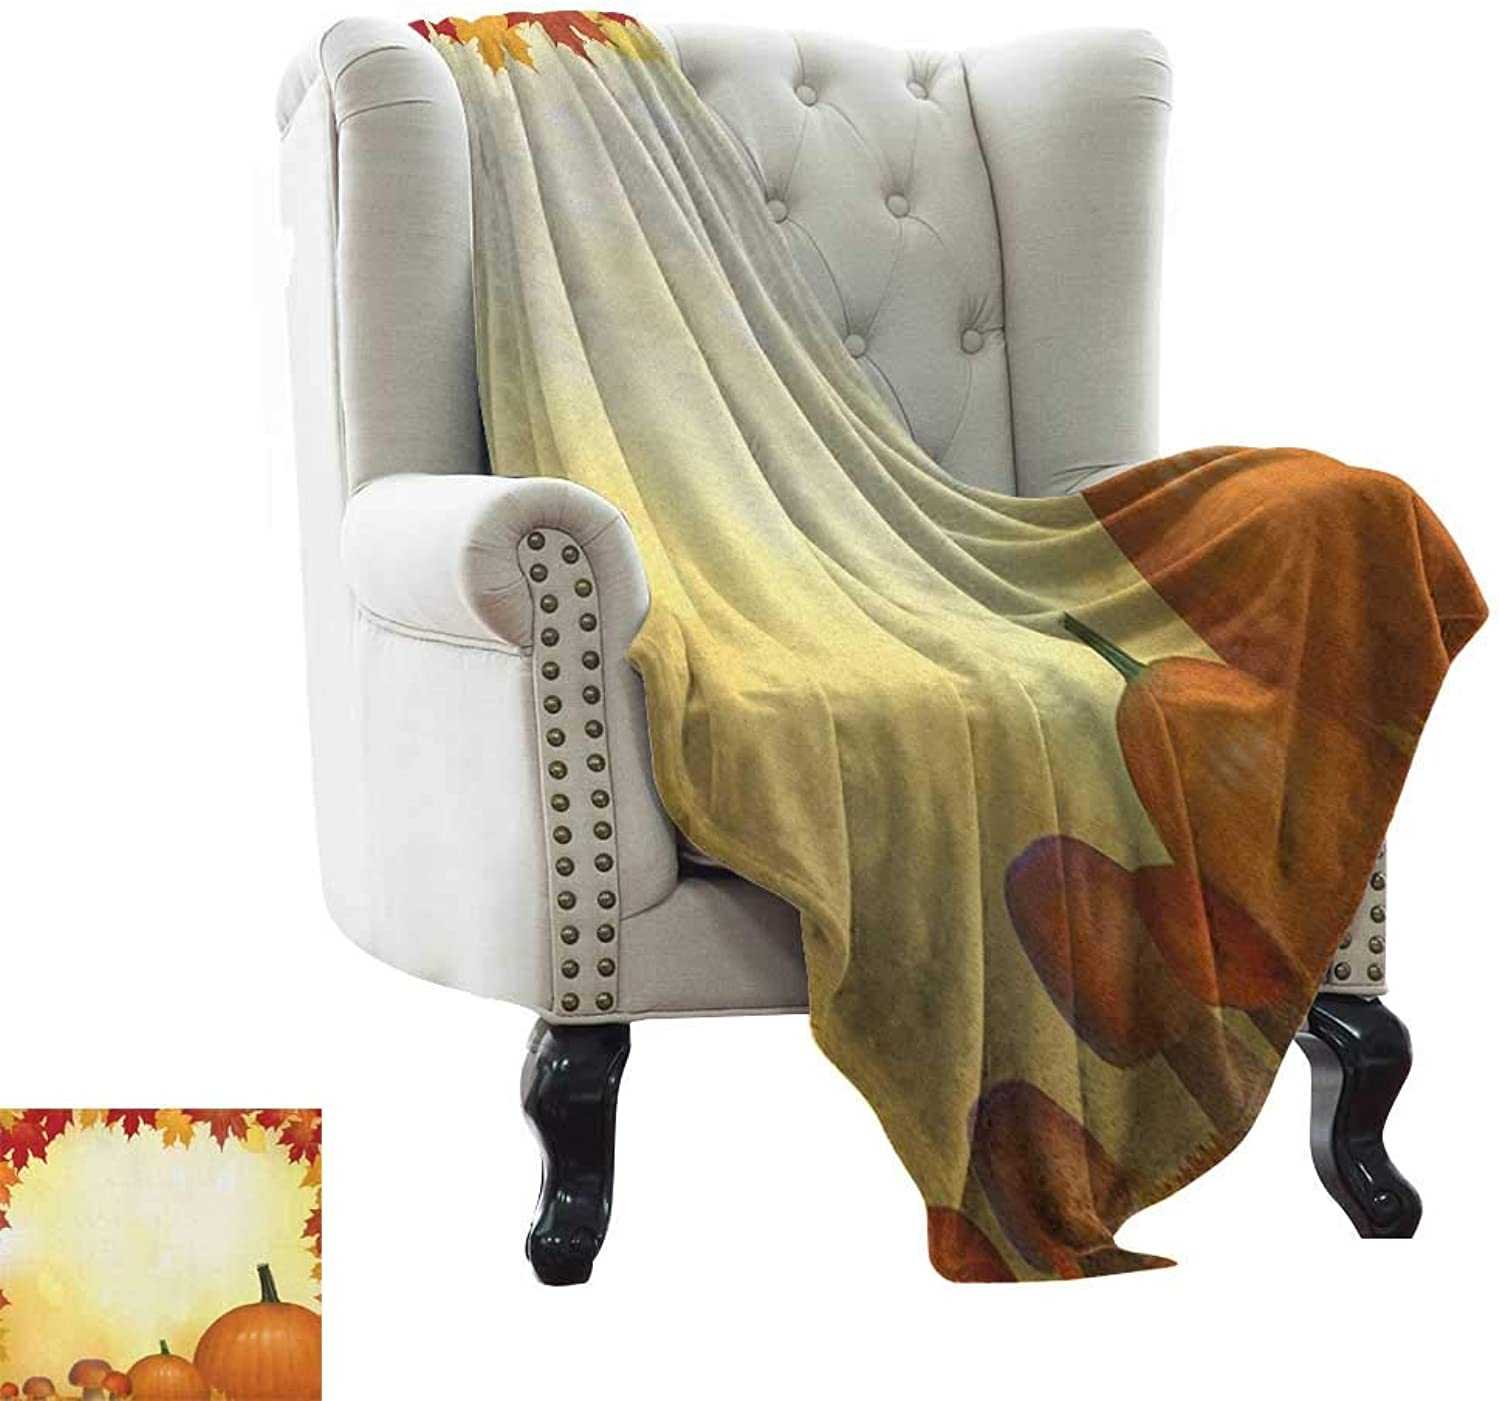 BelleAckerman Weighted Blanket for Kids Harvest,Mushrooms and Pumpkins with Autumn Tree Leaves Framework Bokeh Effect, Pale Yellow orange Red 300GSM,Super Soft and Warm,Durable Throw Blanket 35 x60